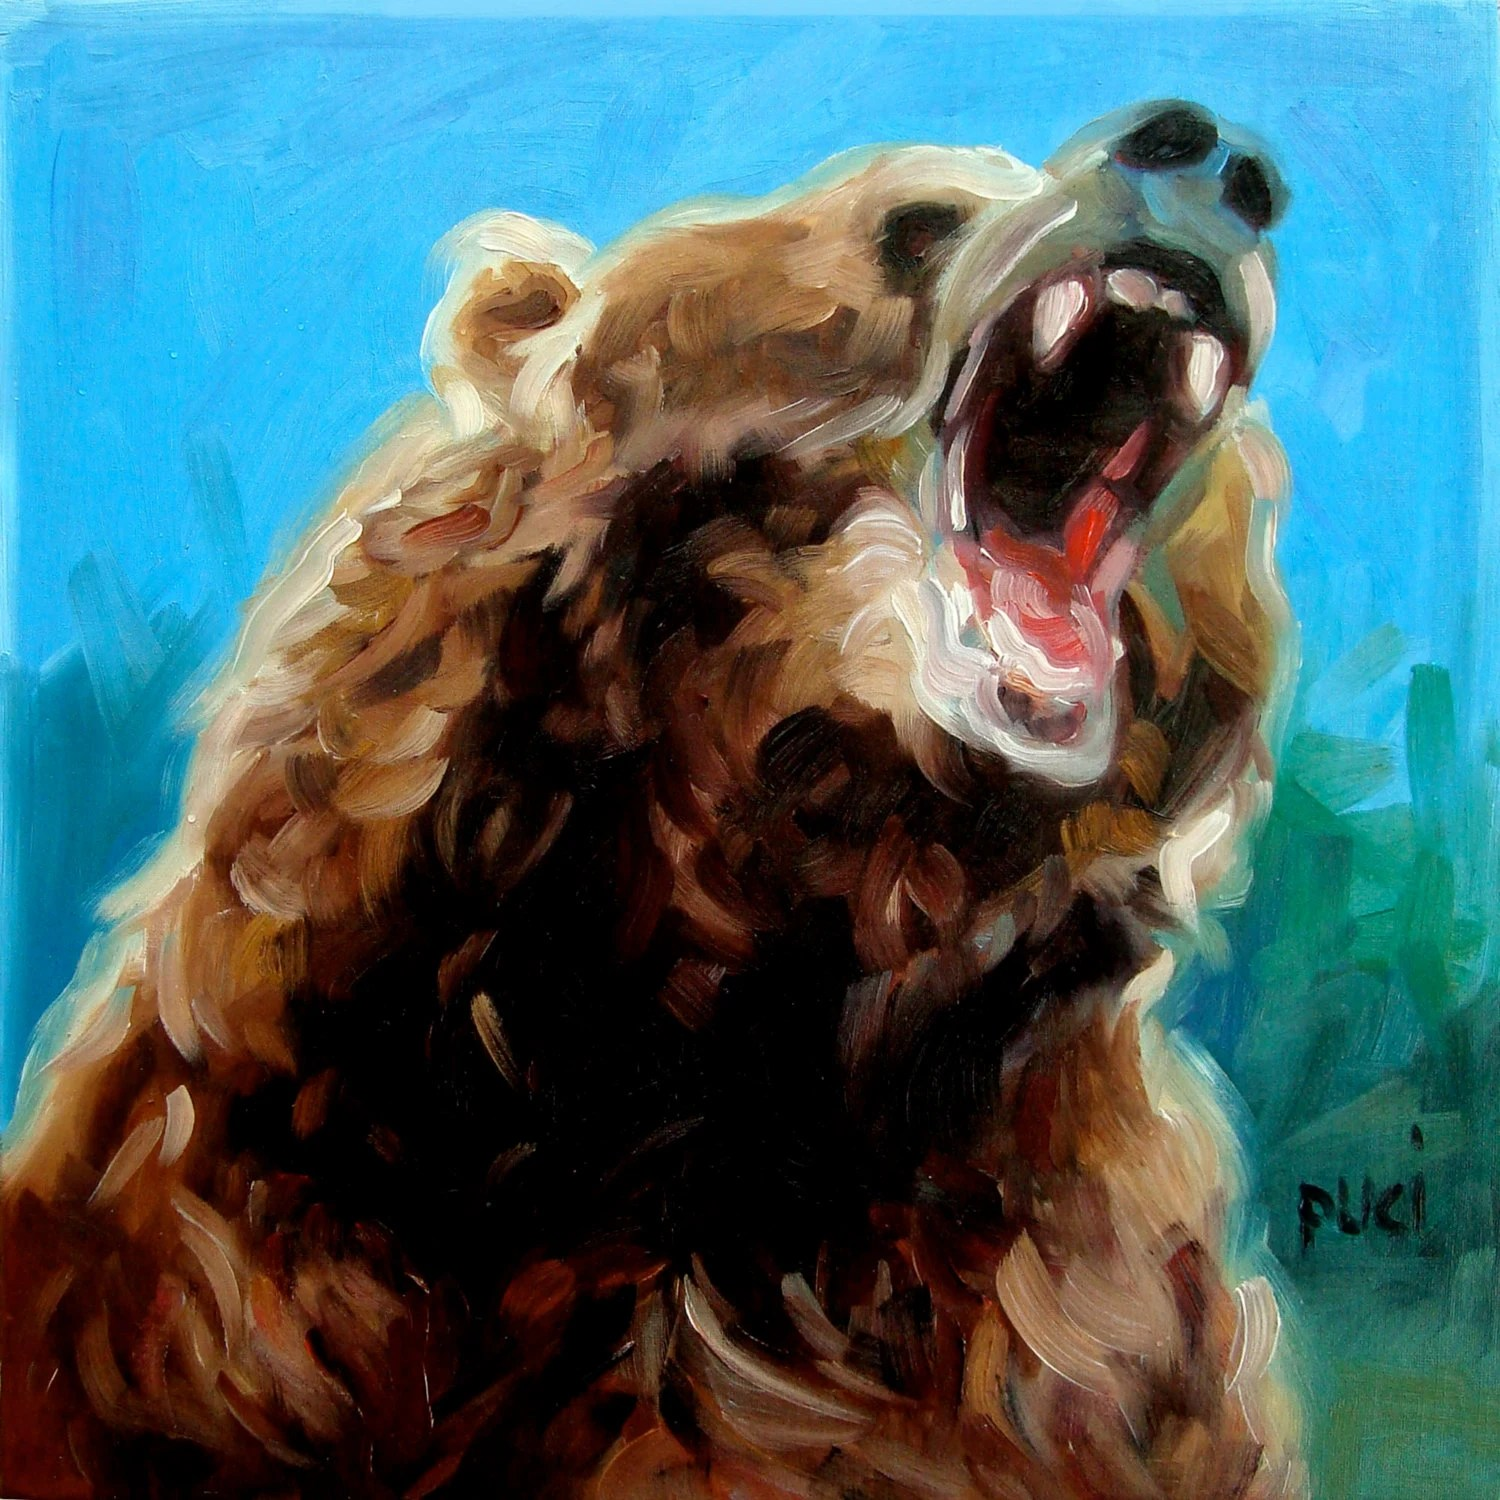 Growling Bear Oil Painting By Puci 8x8 Inches